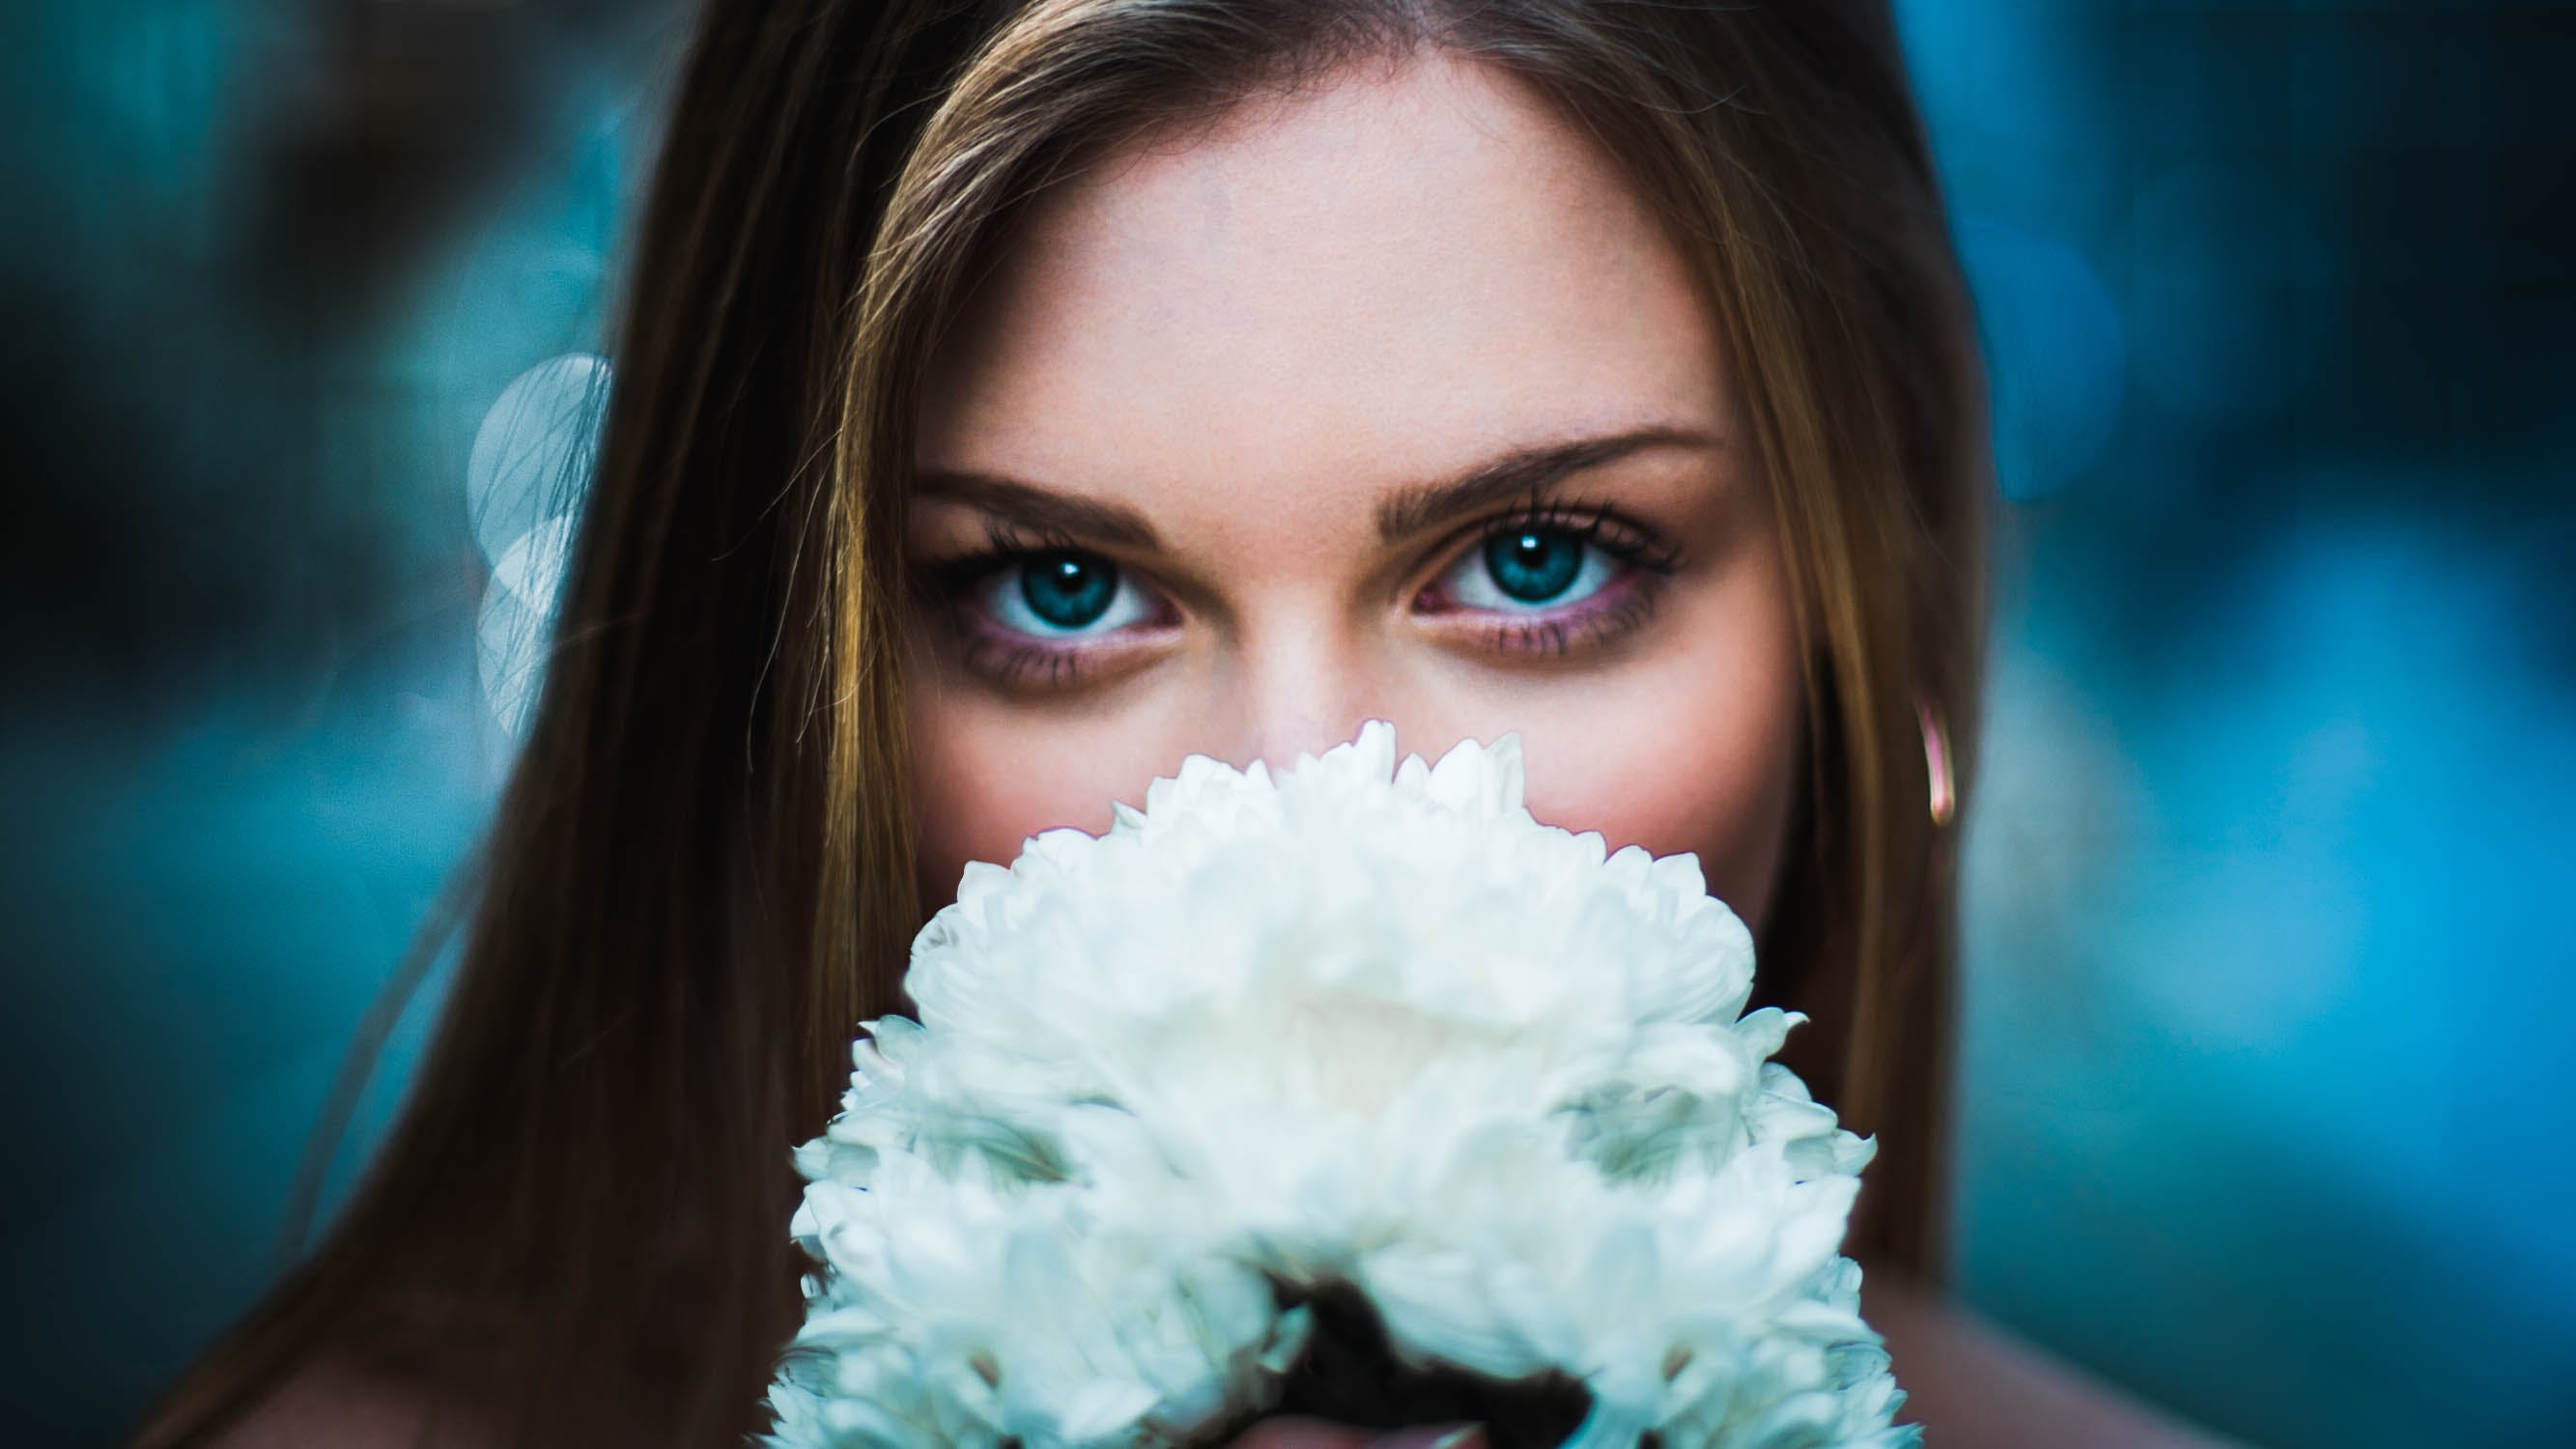 Free stock photo of flower, diy, comedy, official